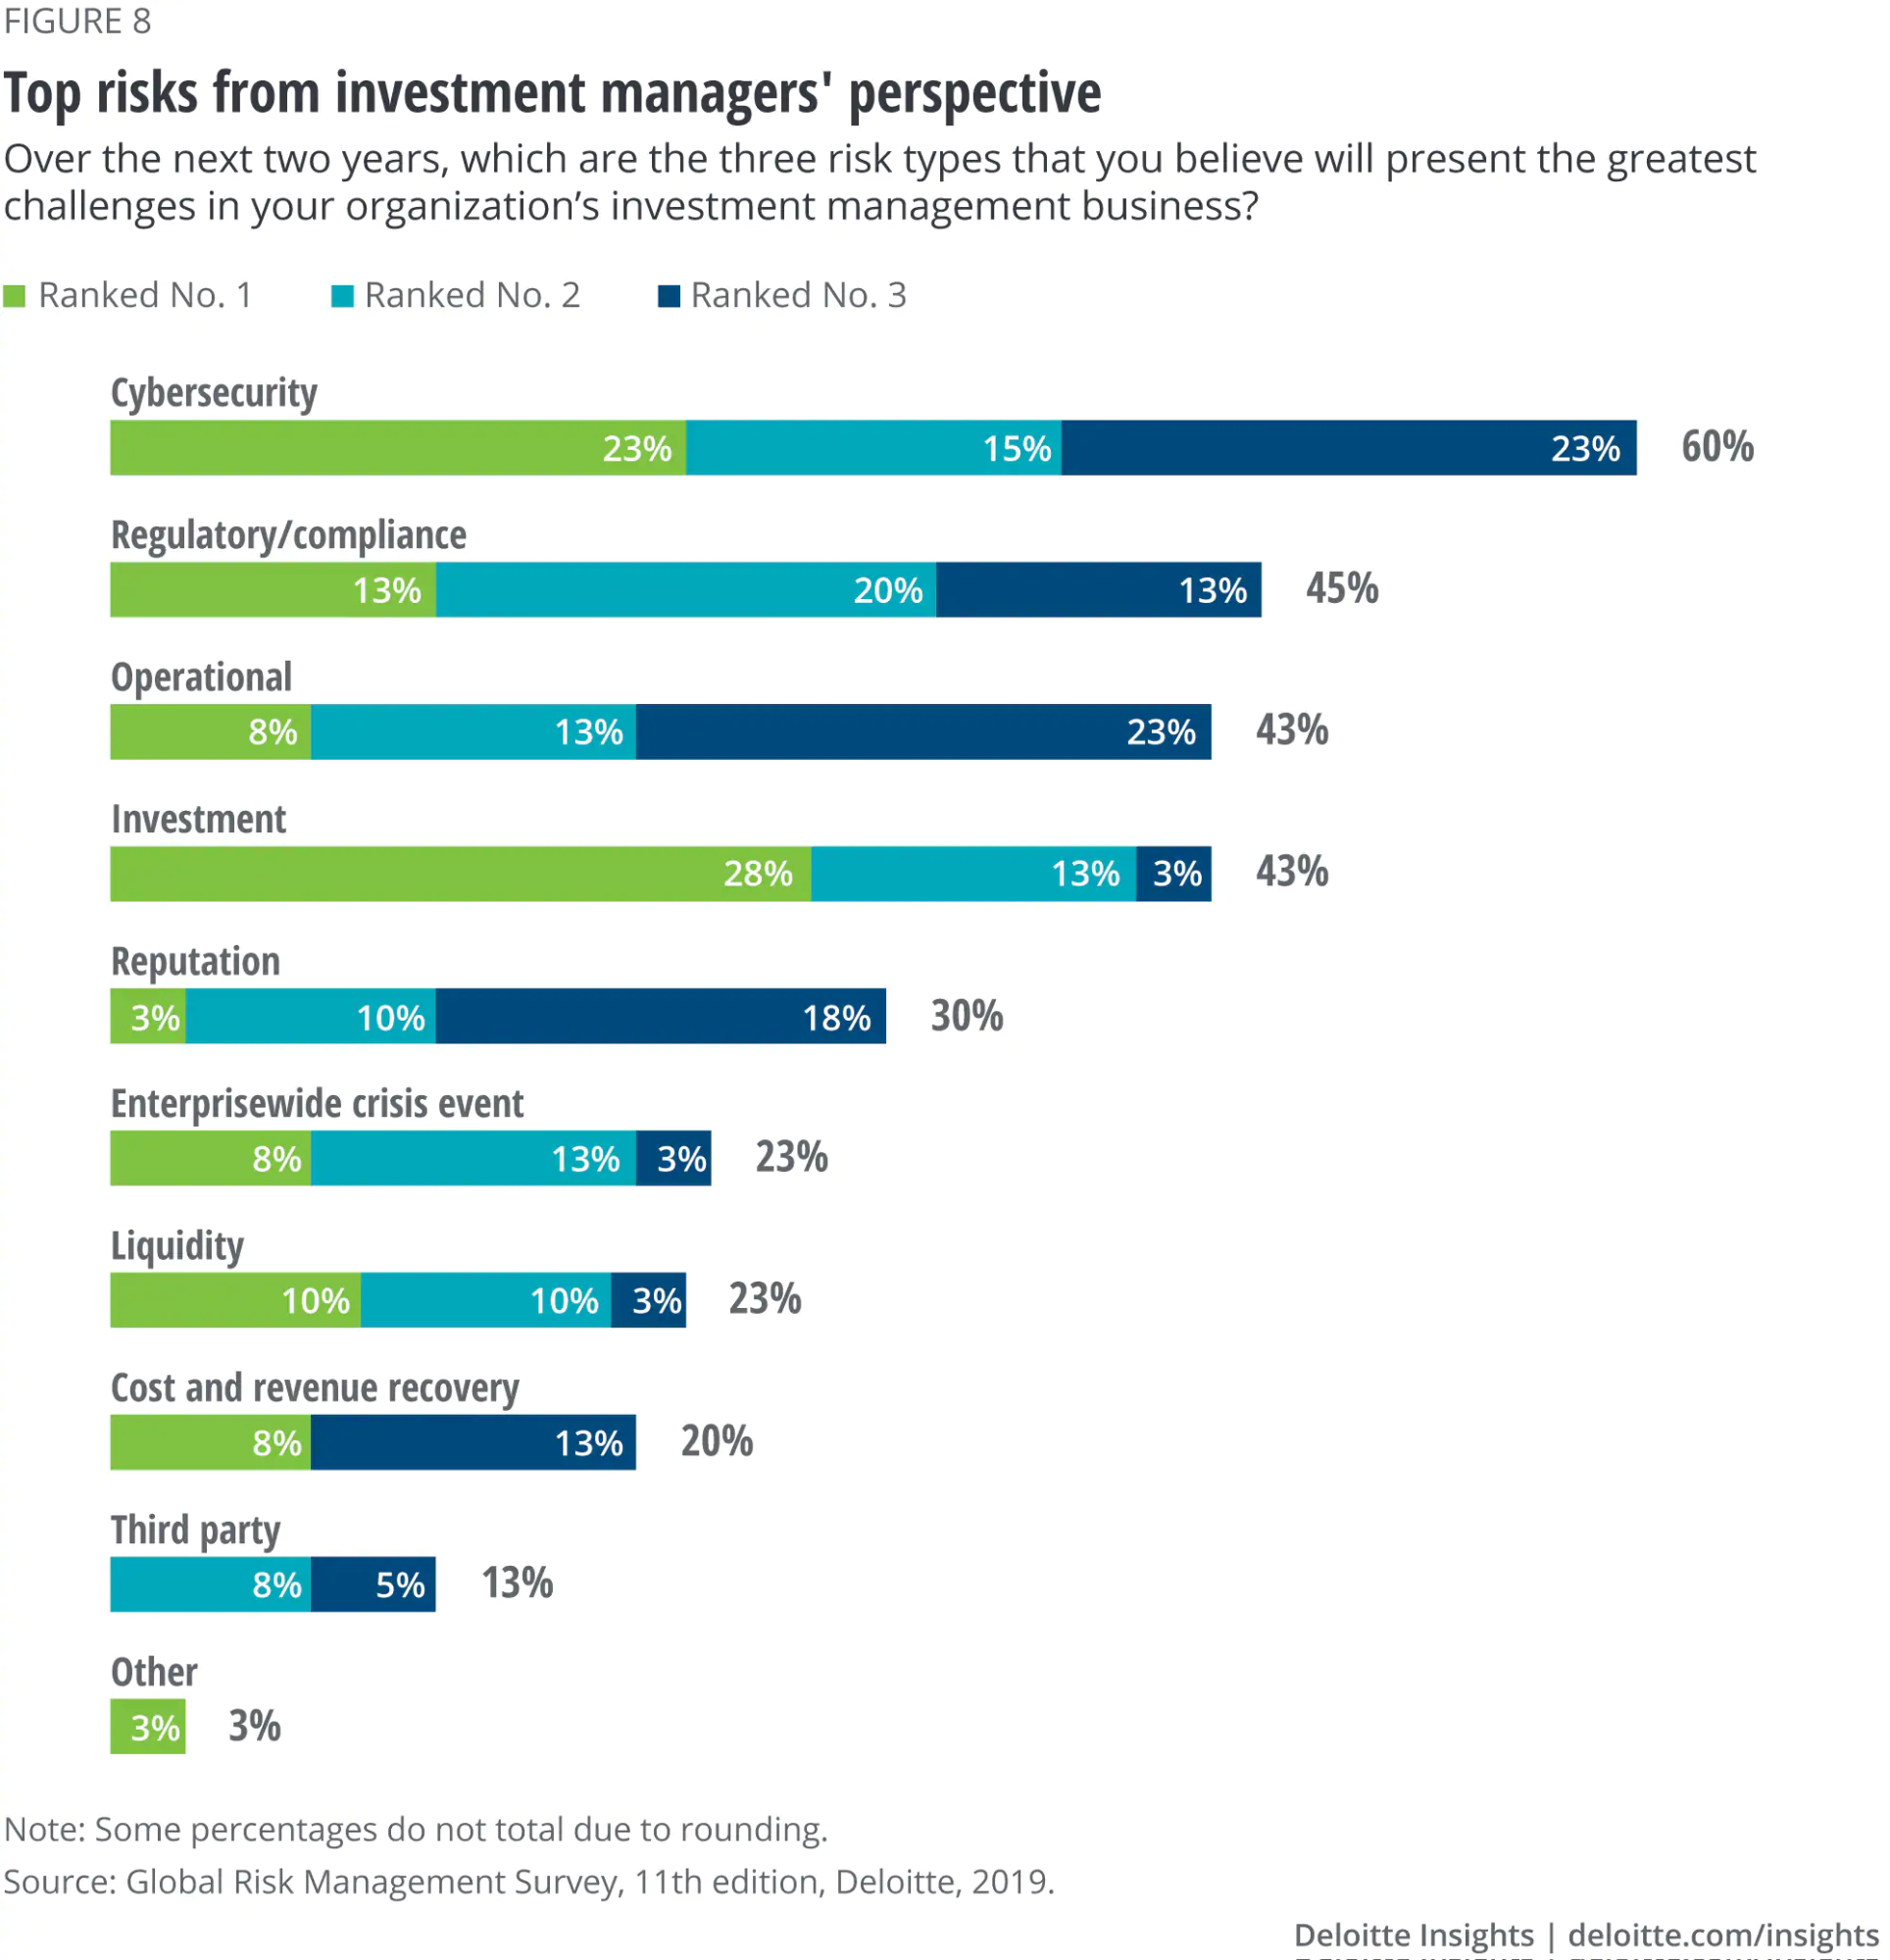 Top risks from investment managers' perspective